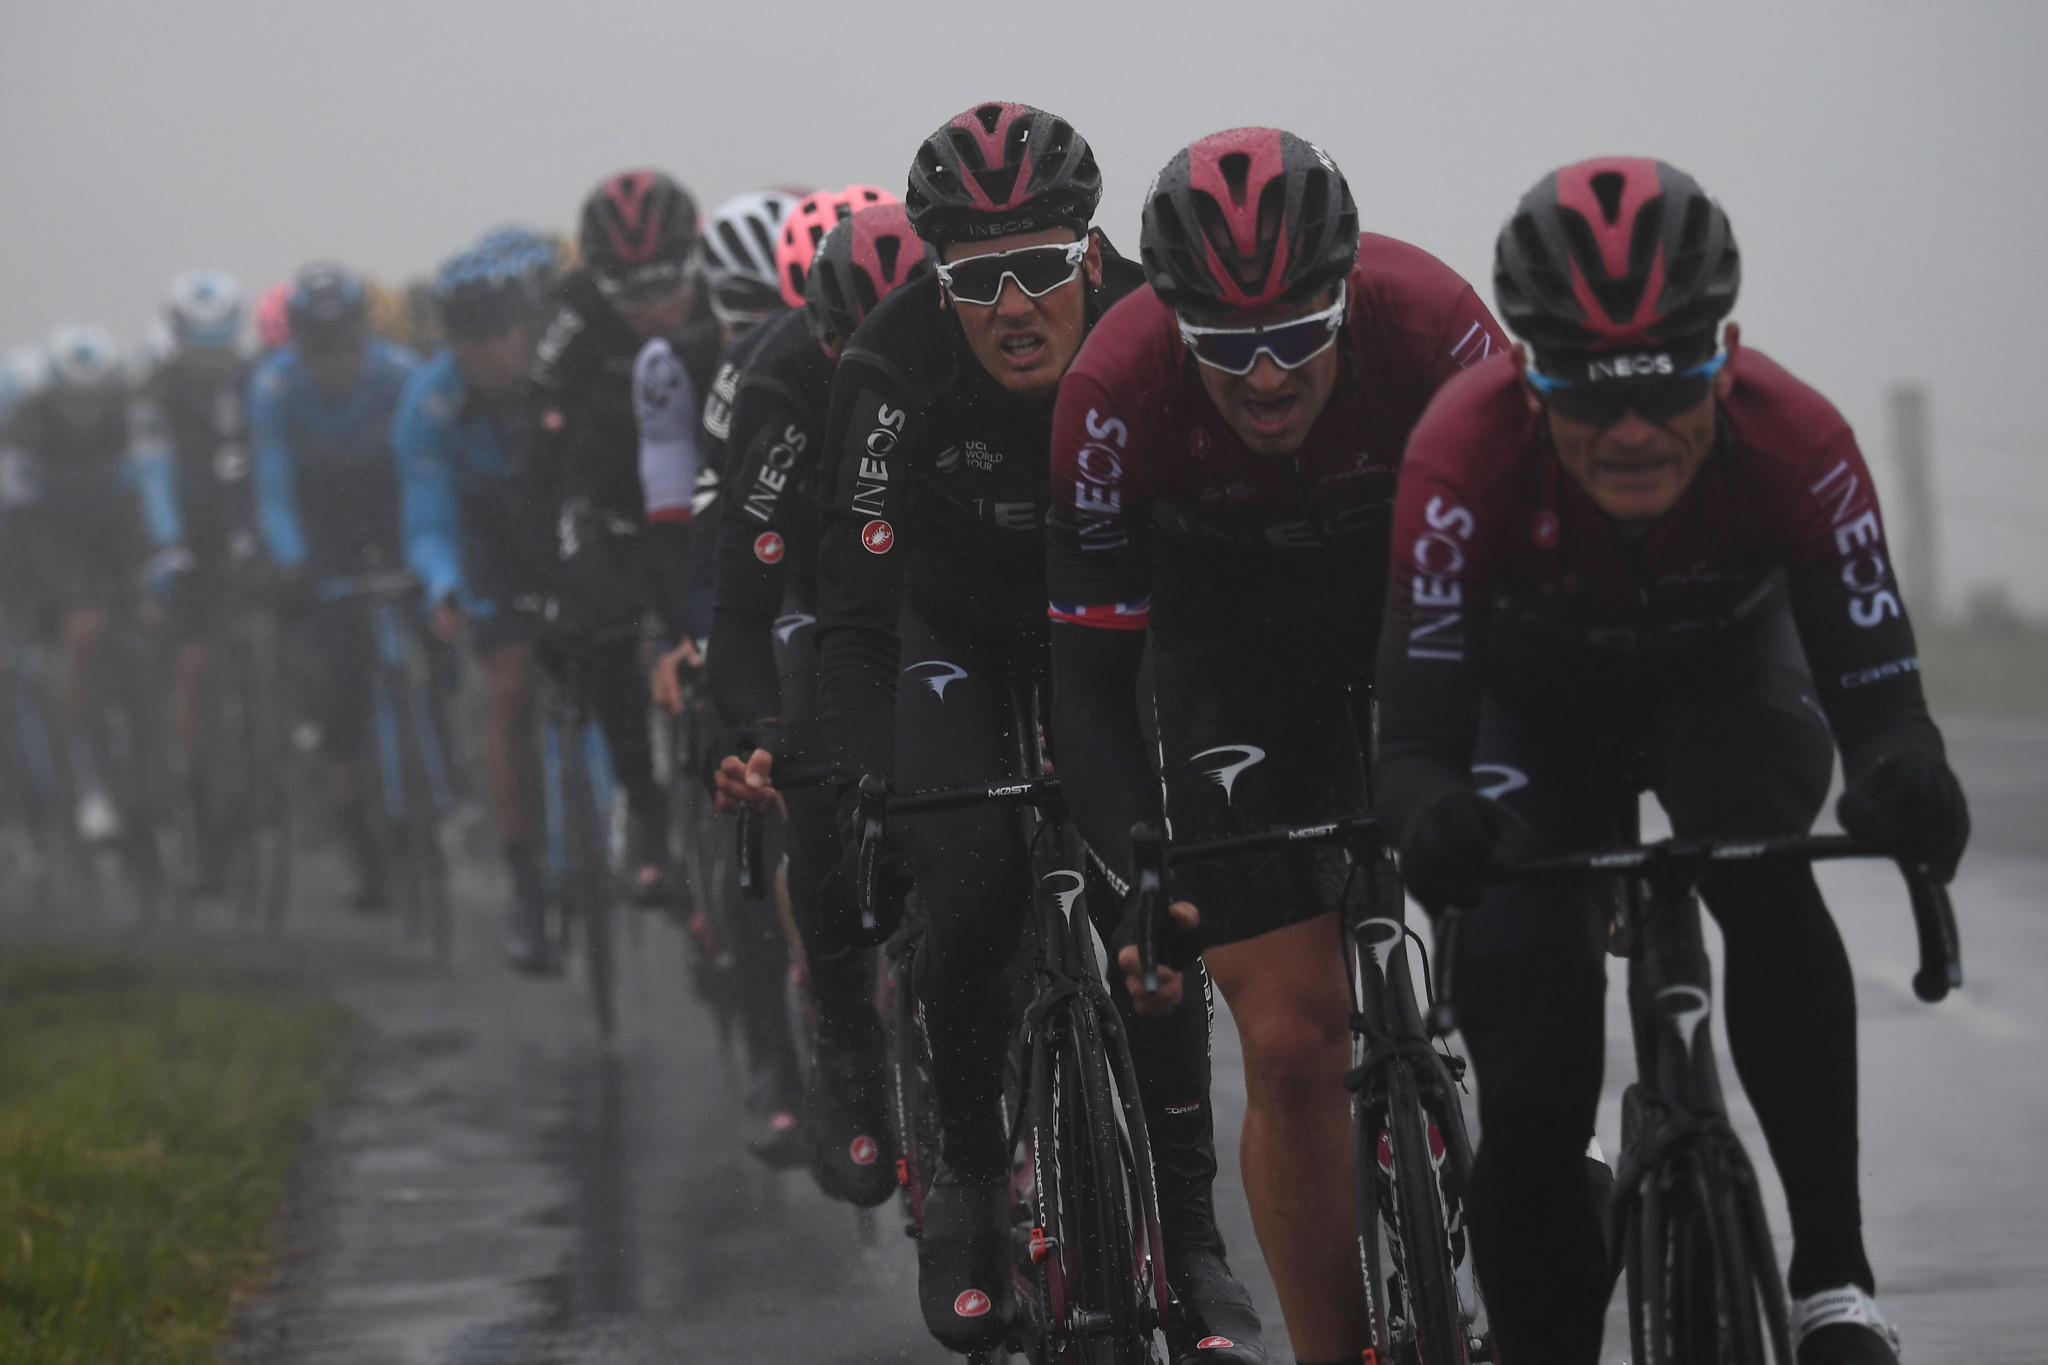 Team Ineos cyclists ride at the front of the peleton in treacherous conditions ©Getty Images